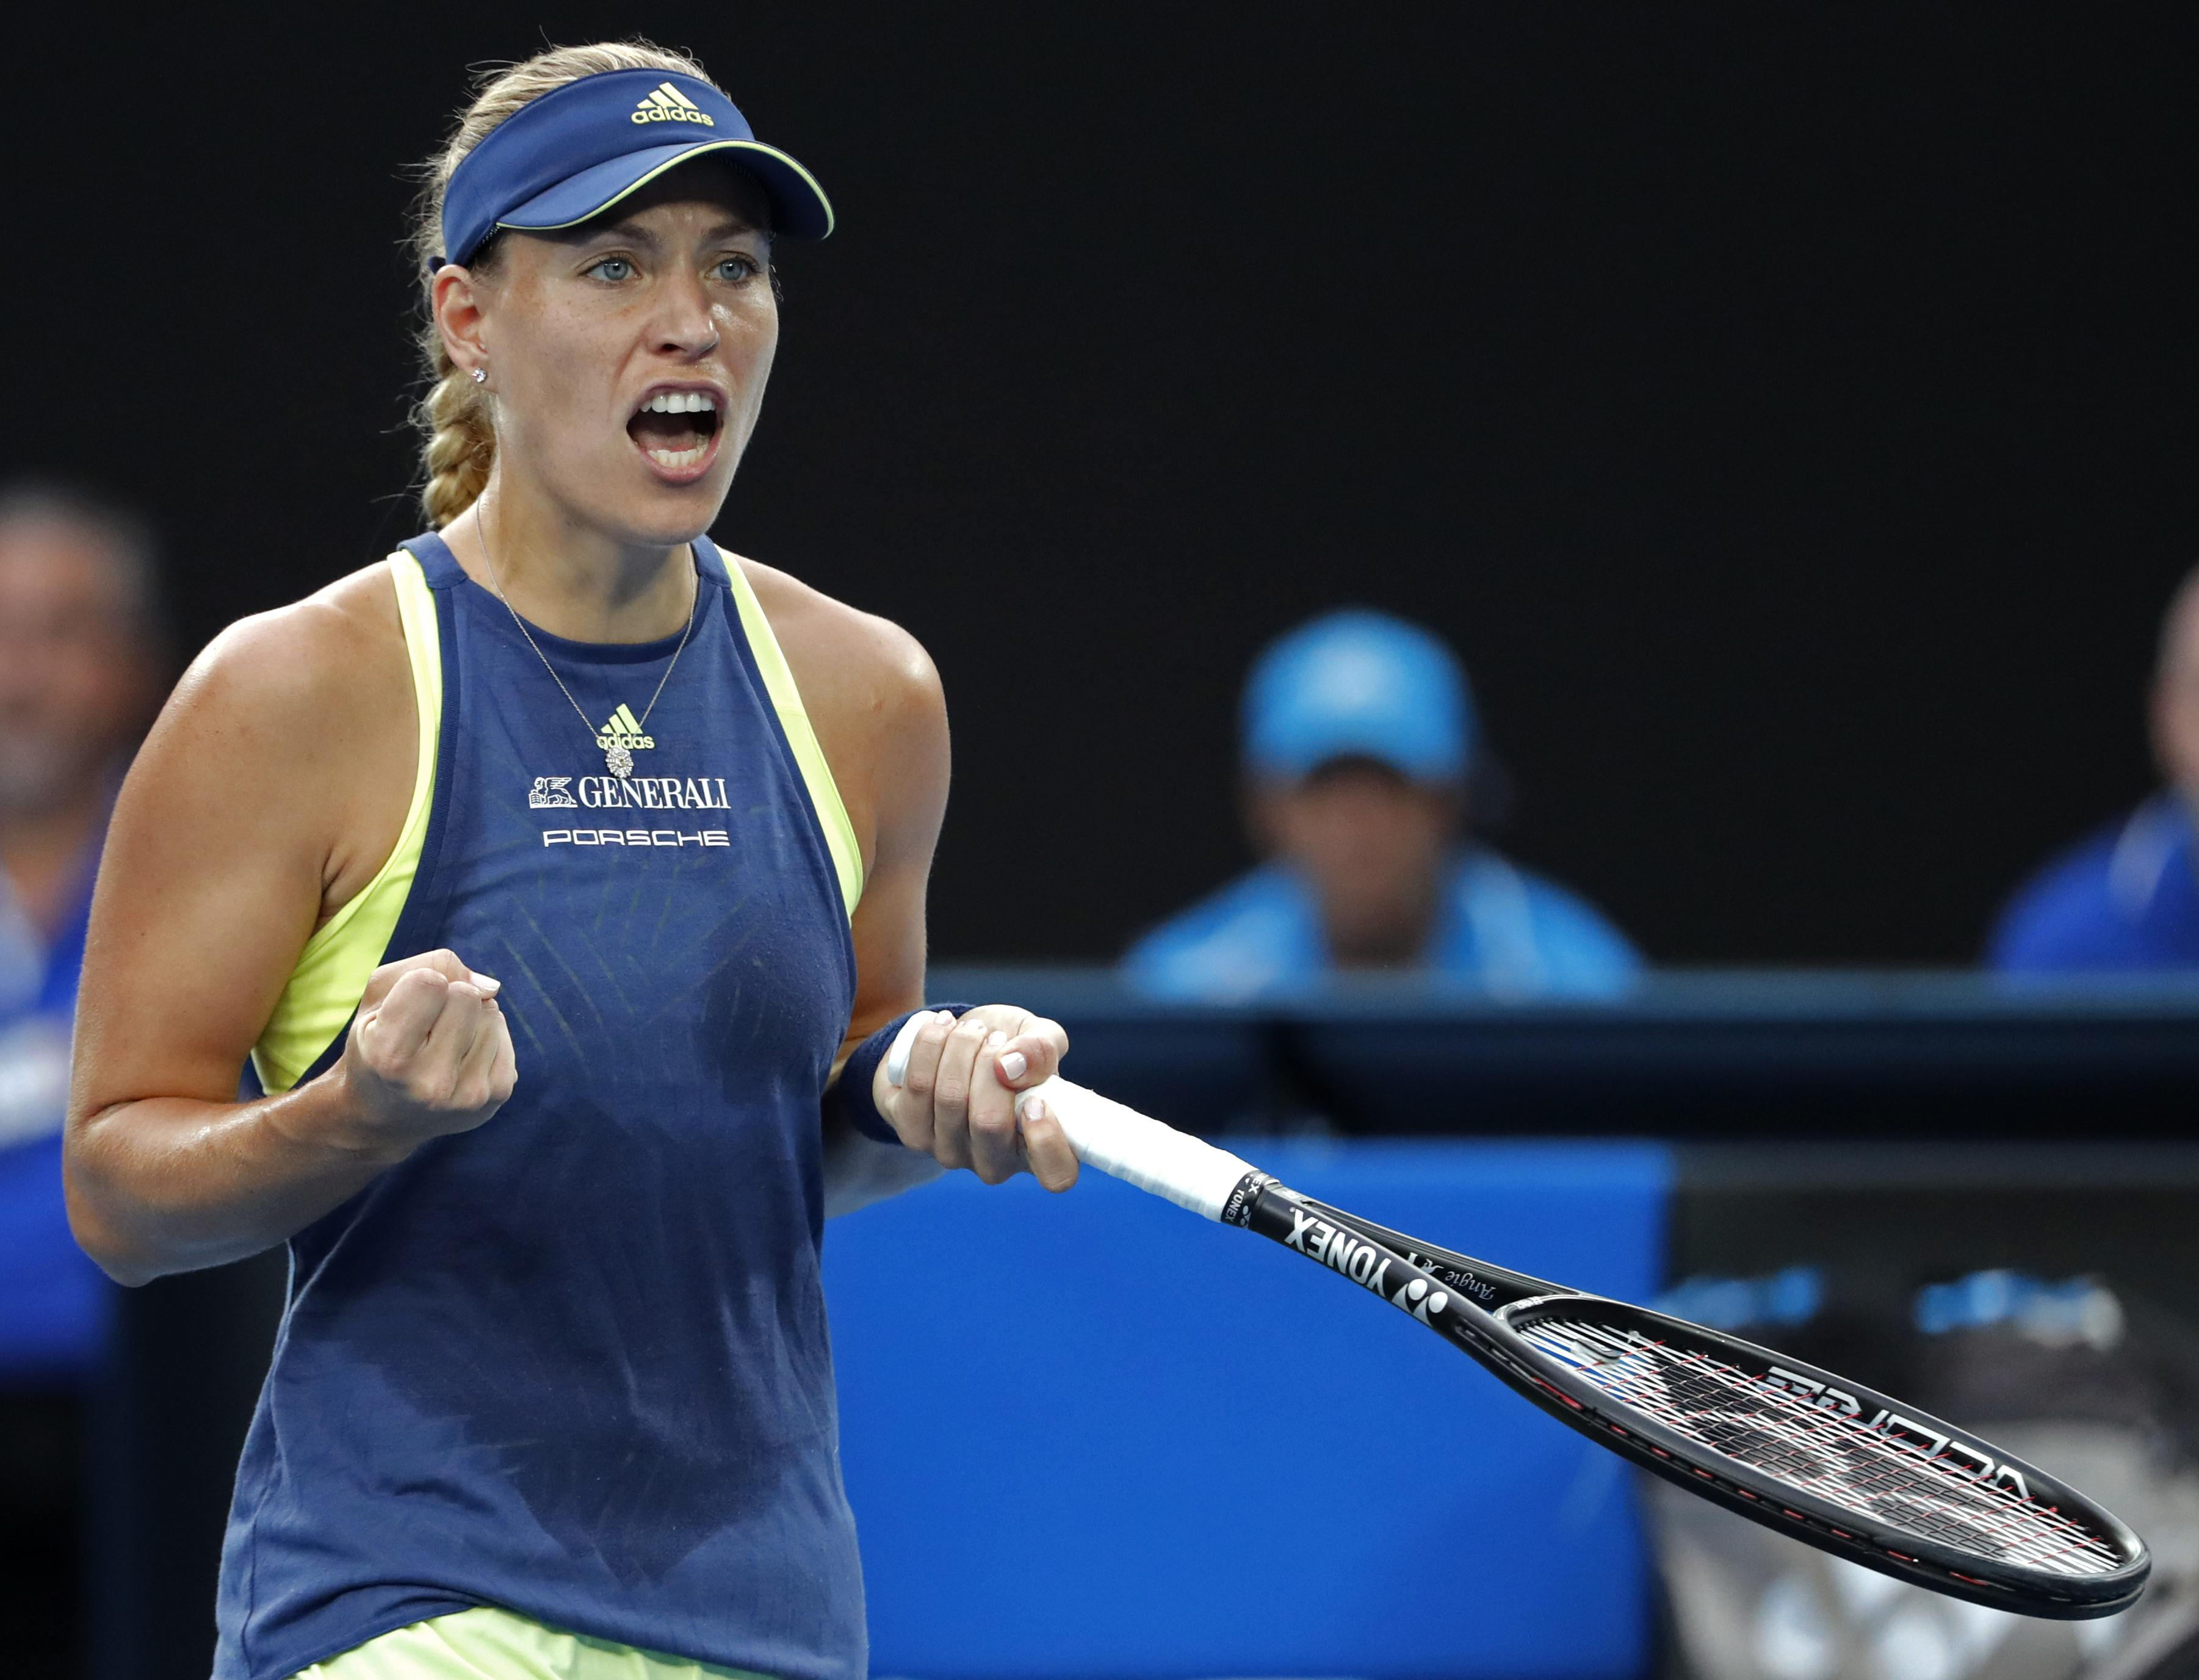 Angelique Kerber saved two match points then failed to convert two of her own before losing an epic encounter